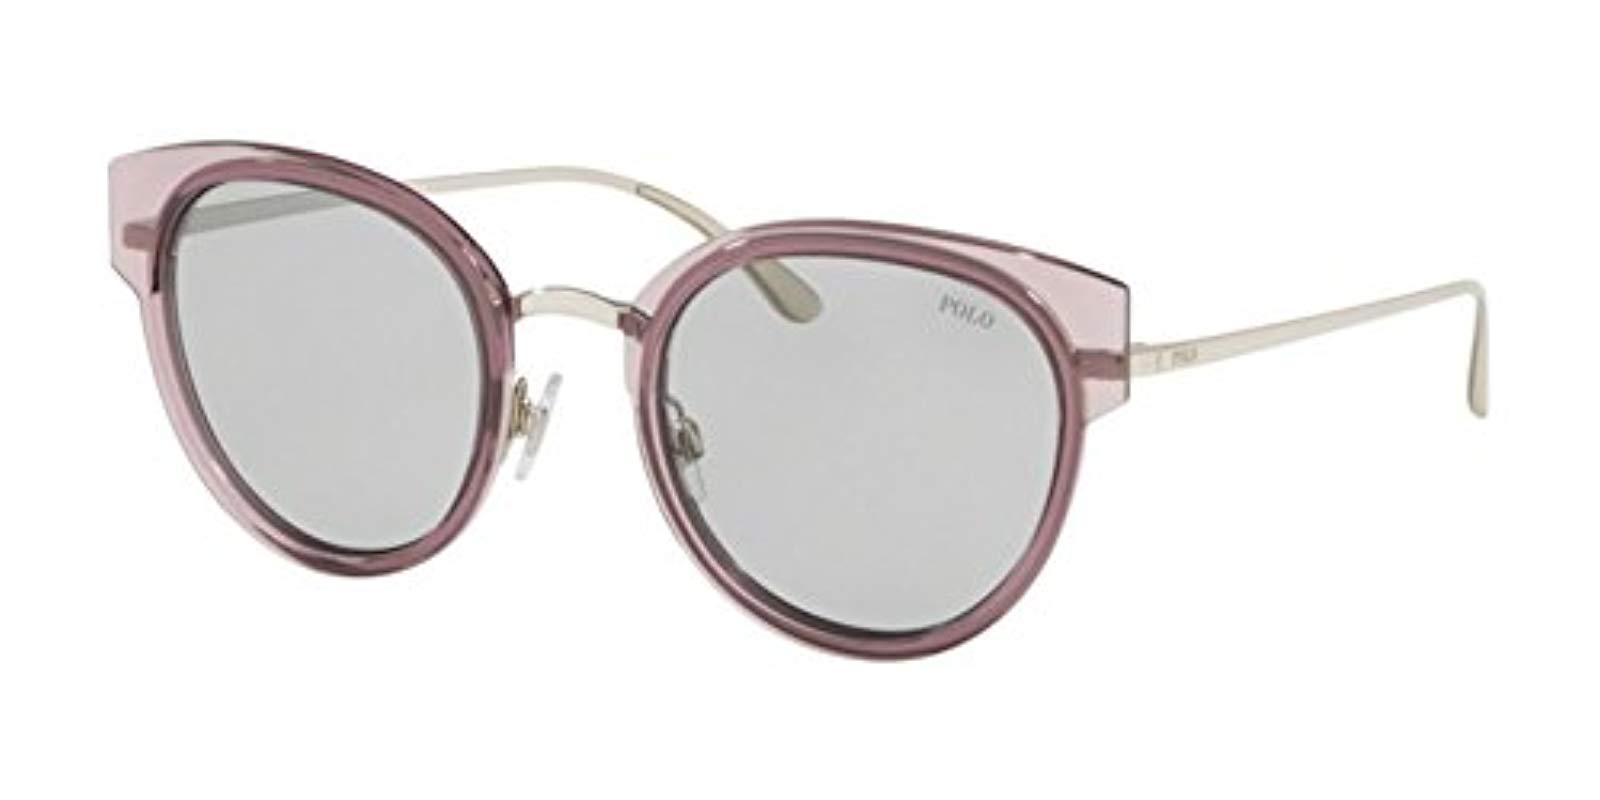 794051b90a5 Lyst - Polo Ralph Lauren 0ph3116 Round Sunglasses Trasparent Pink ...